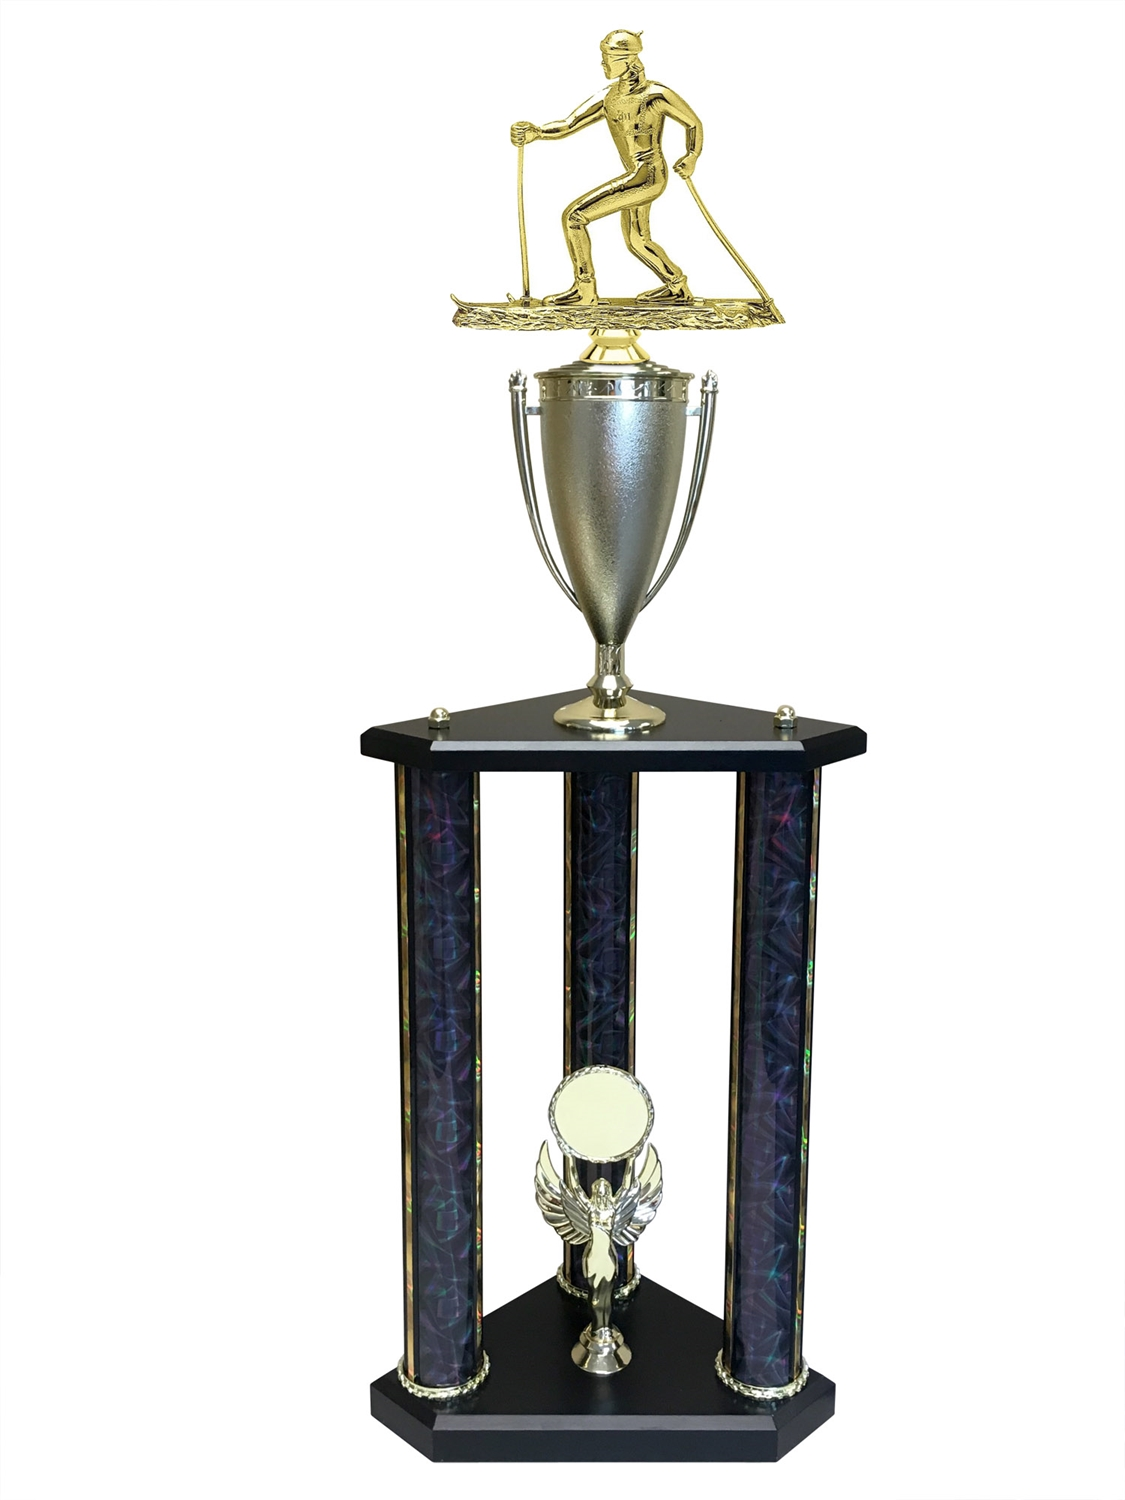 3 Post Cross Country Ski Trophy in 11 colors & 3 sizes